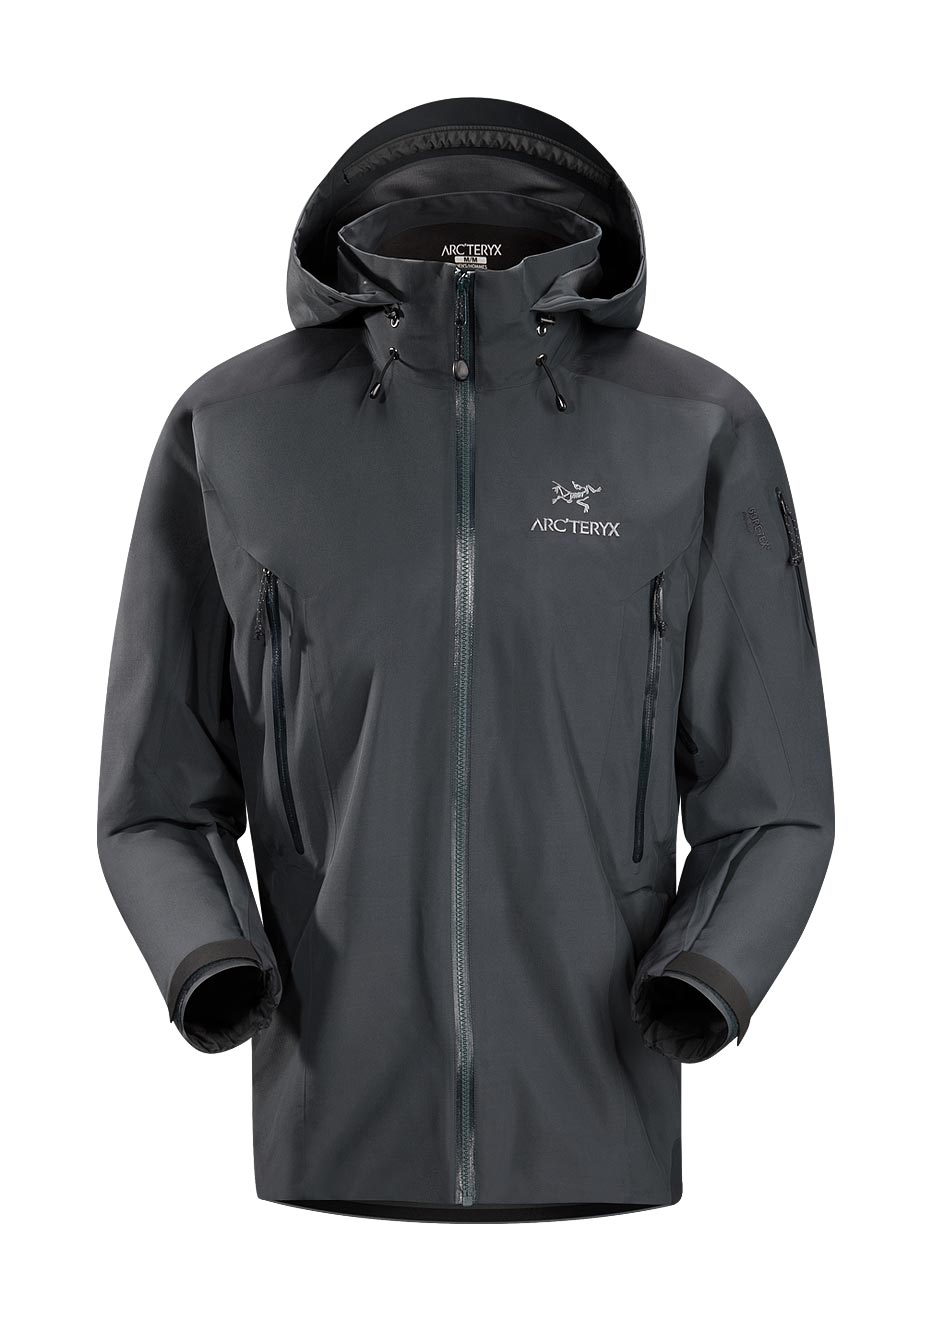 Arcteryx Jackets Men Night shade Theta AR Jacket